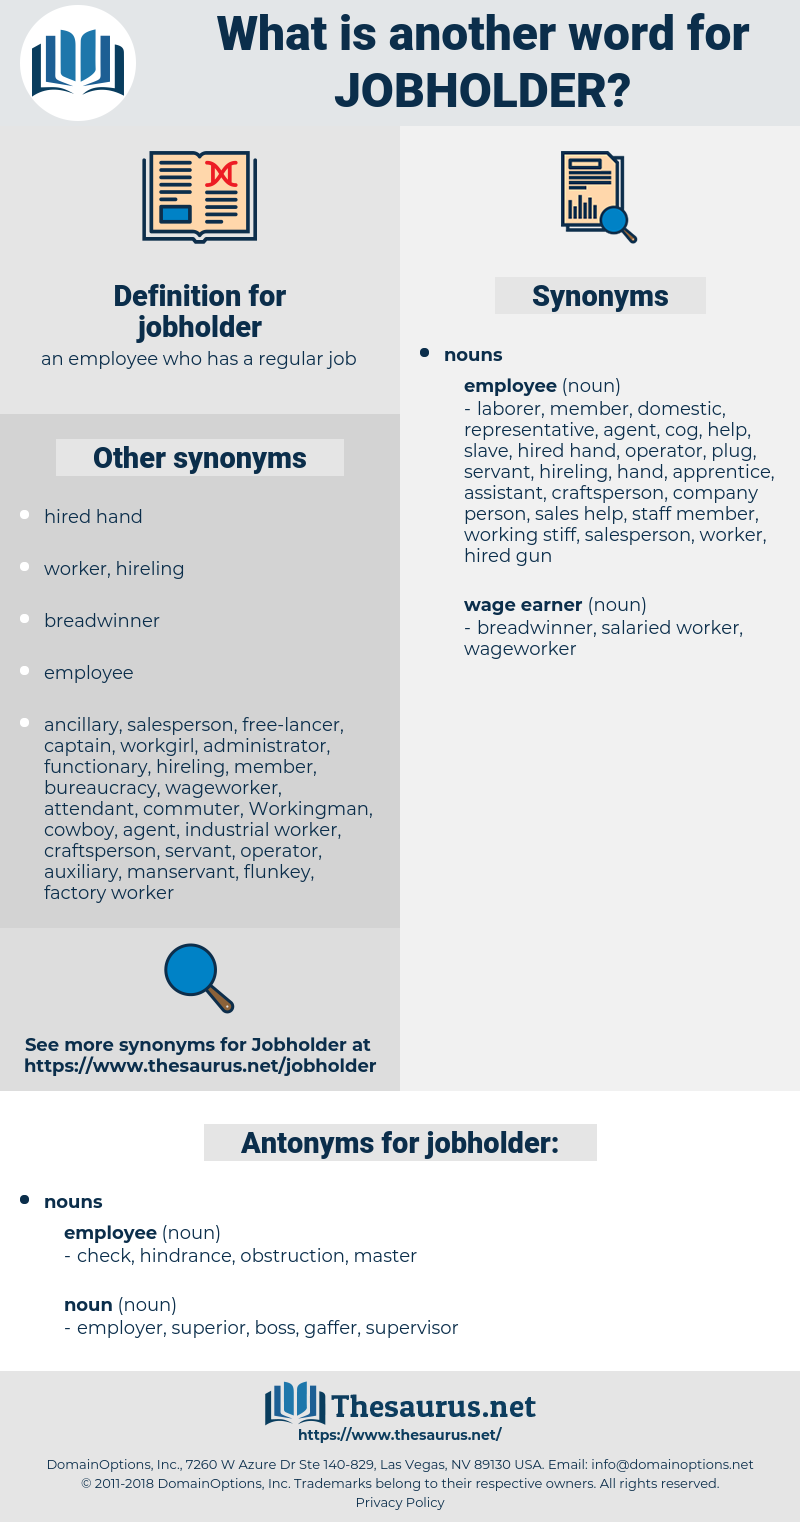 jobholder, synonym jobholder, another word for jobholder, words like jobholder, thesaurus jobholder